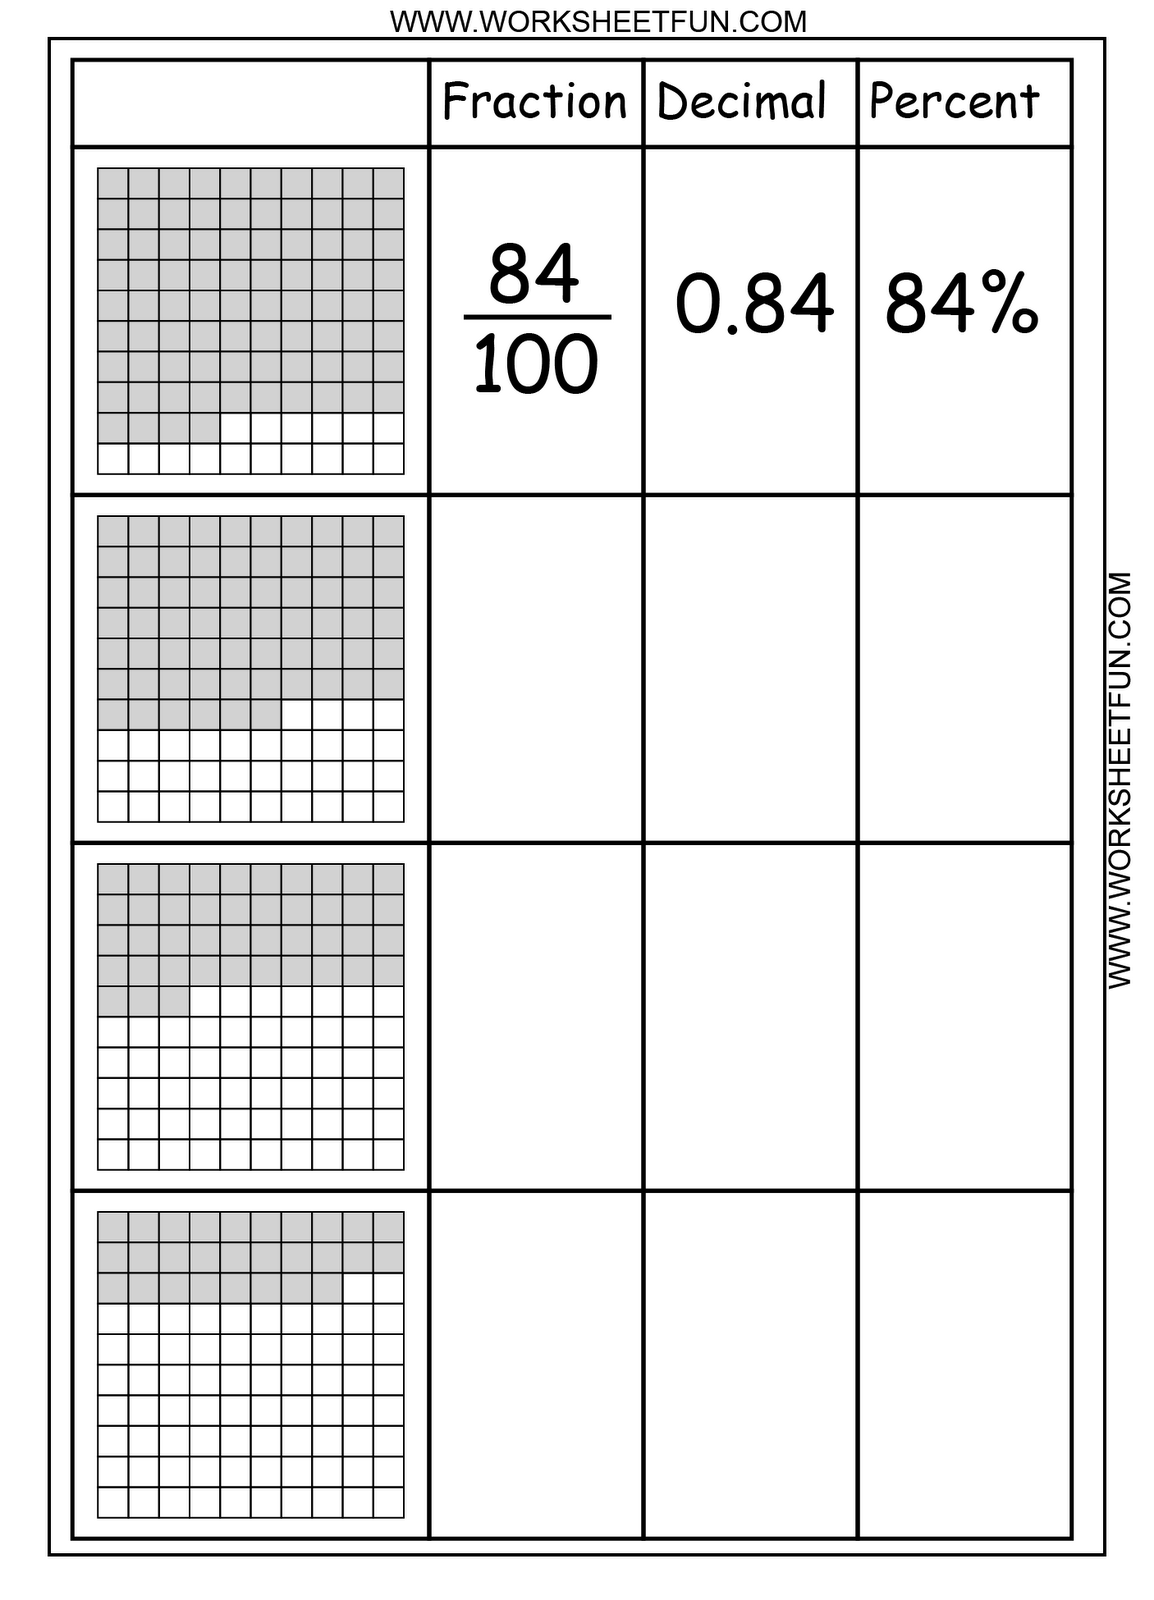 math worksheet : 1000 images about fractions decimals percents on pinterest  : Fractions Decimals And Percentages Worksheet